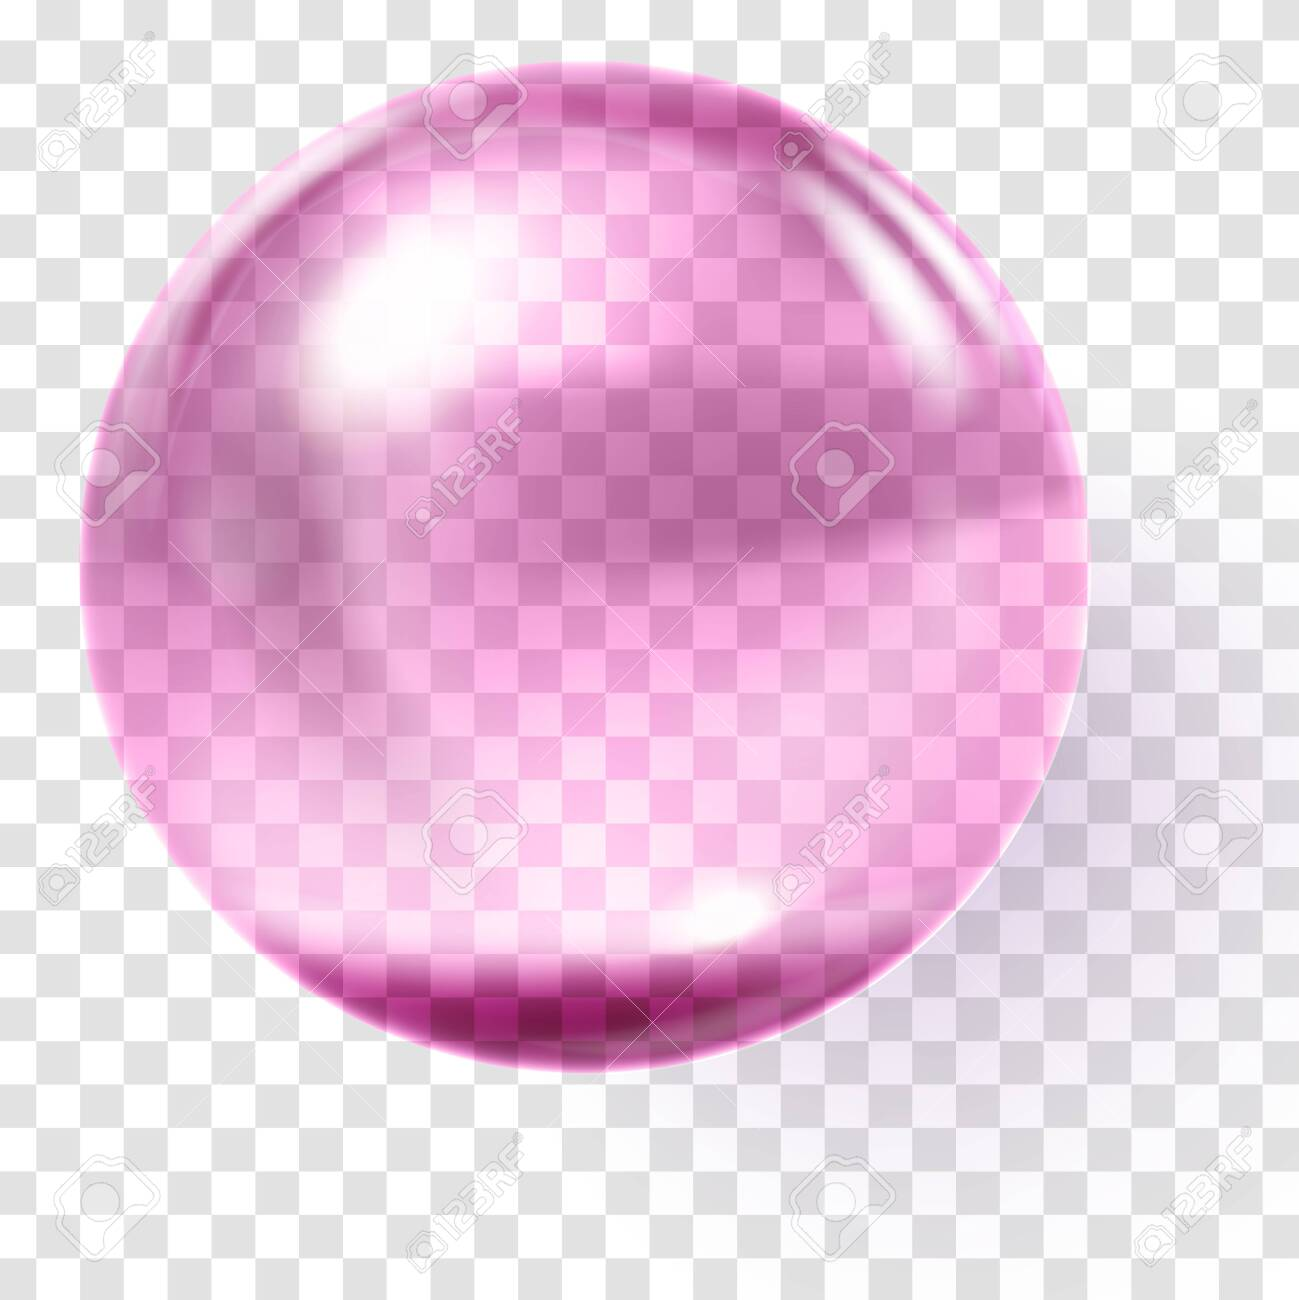 Realistic pink glass ball. Transparent pink sphere - 131696646